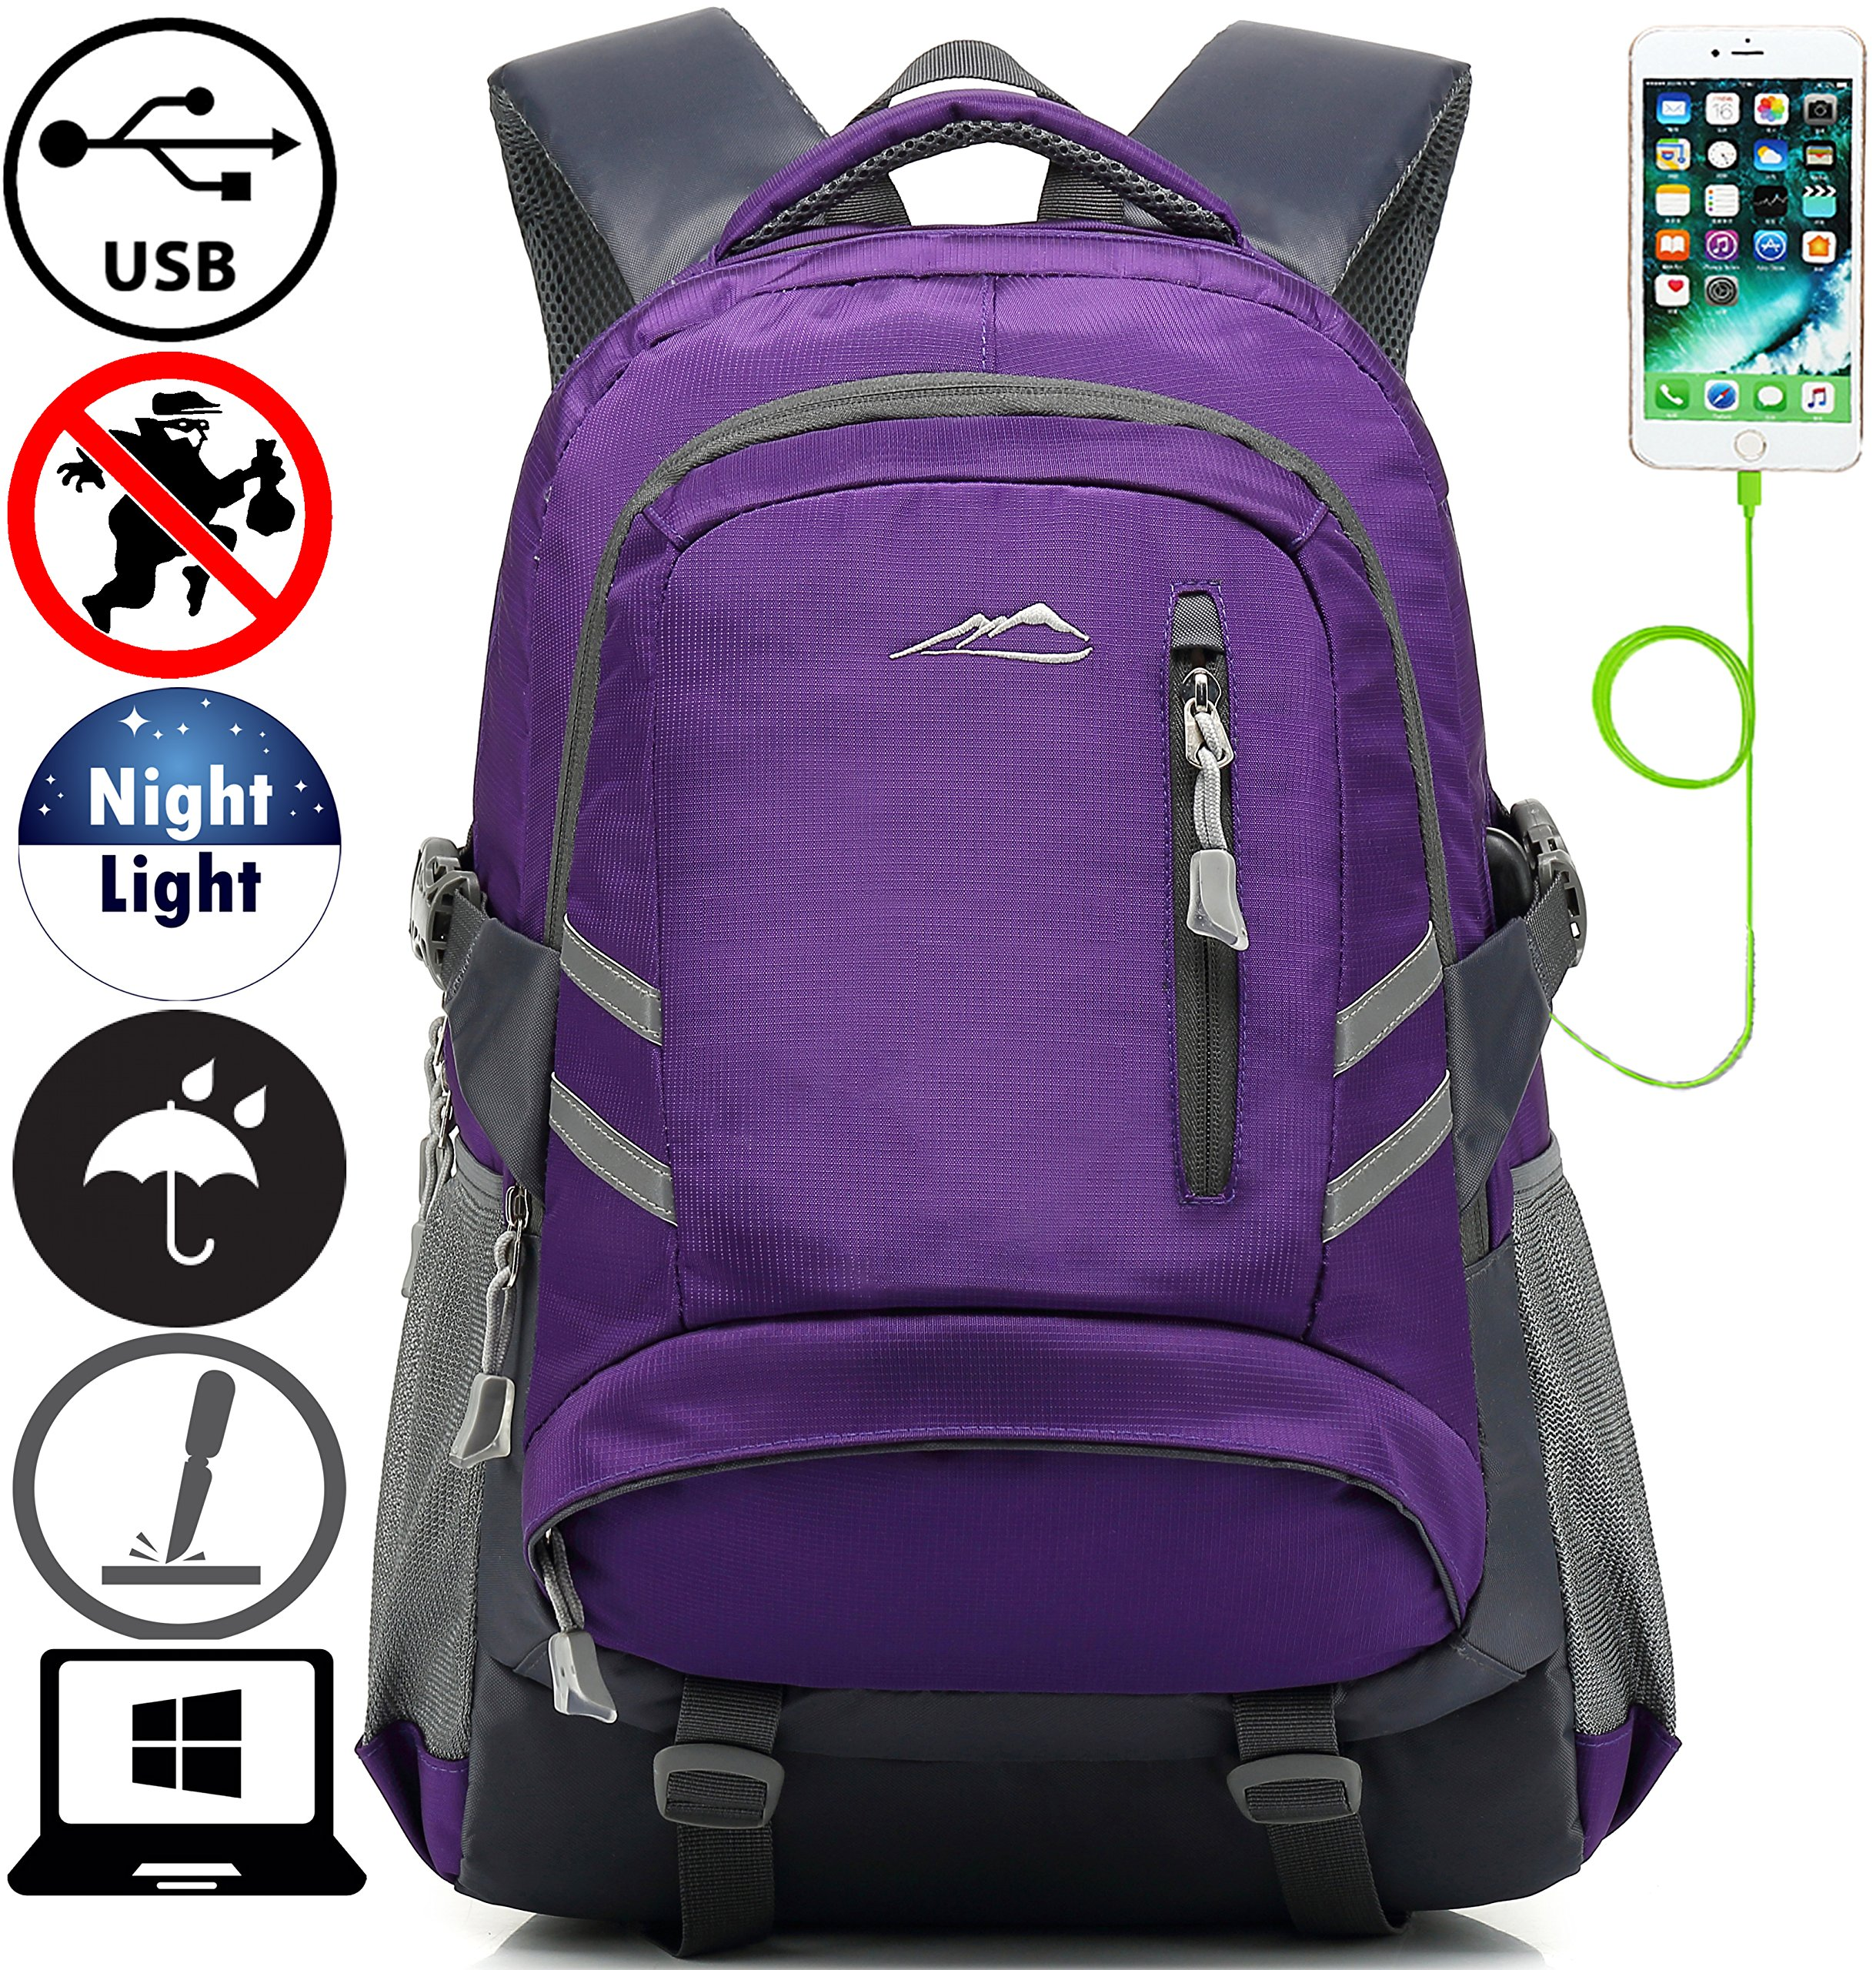 Backpack Bookbag For School College Student Travel Business With USB Charging Port Water Resistant Fit Laptop Up to 15.6 Inch Anti theft Night Light Reflective (Purple)